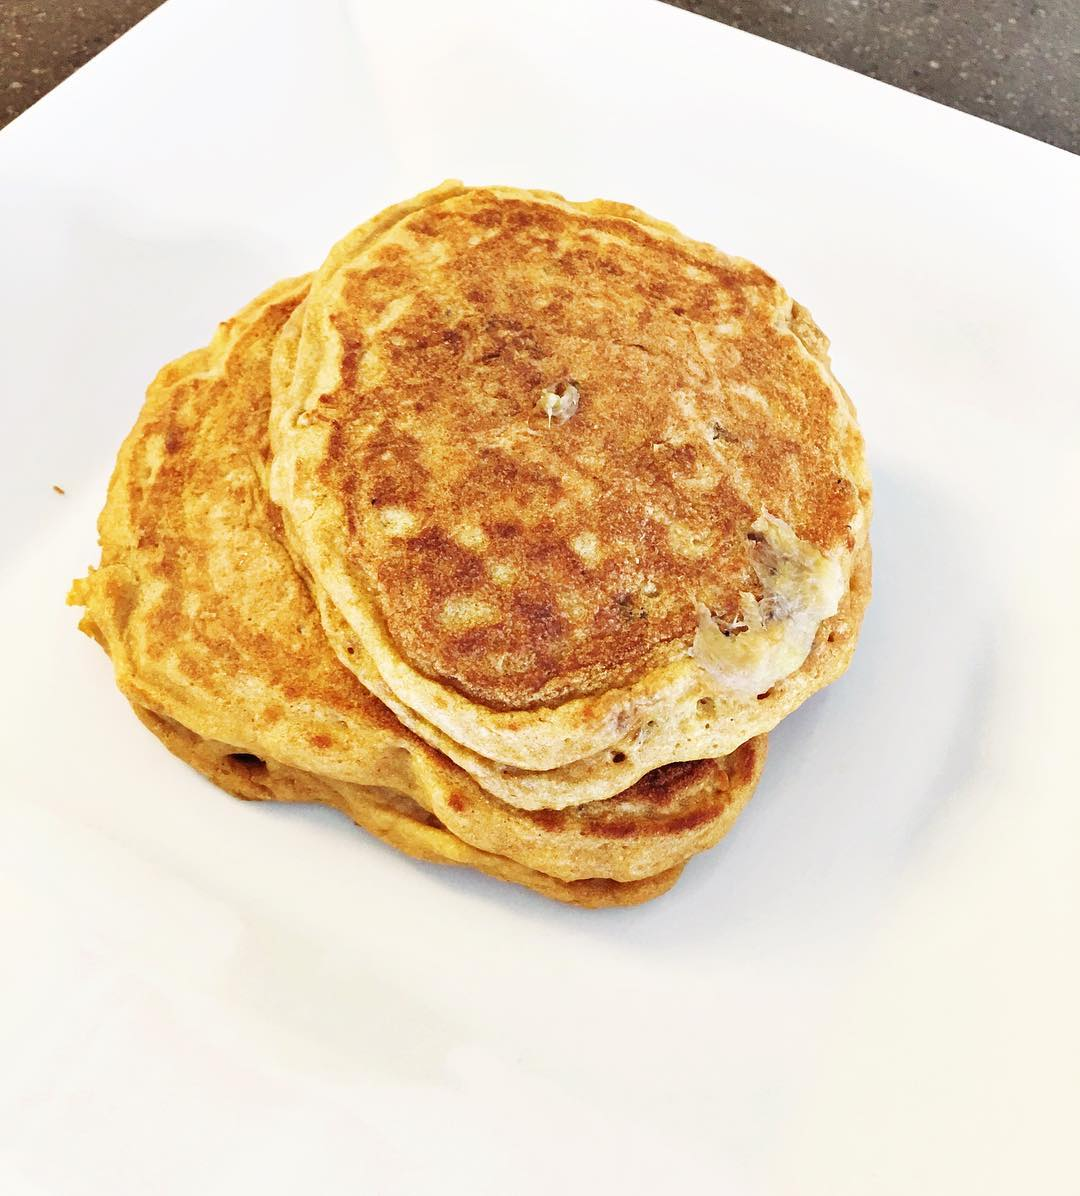 the ultimate healthy buttermilk pancakes by @aliciadturner